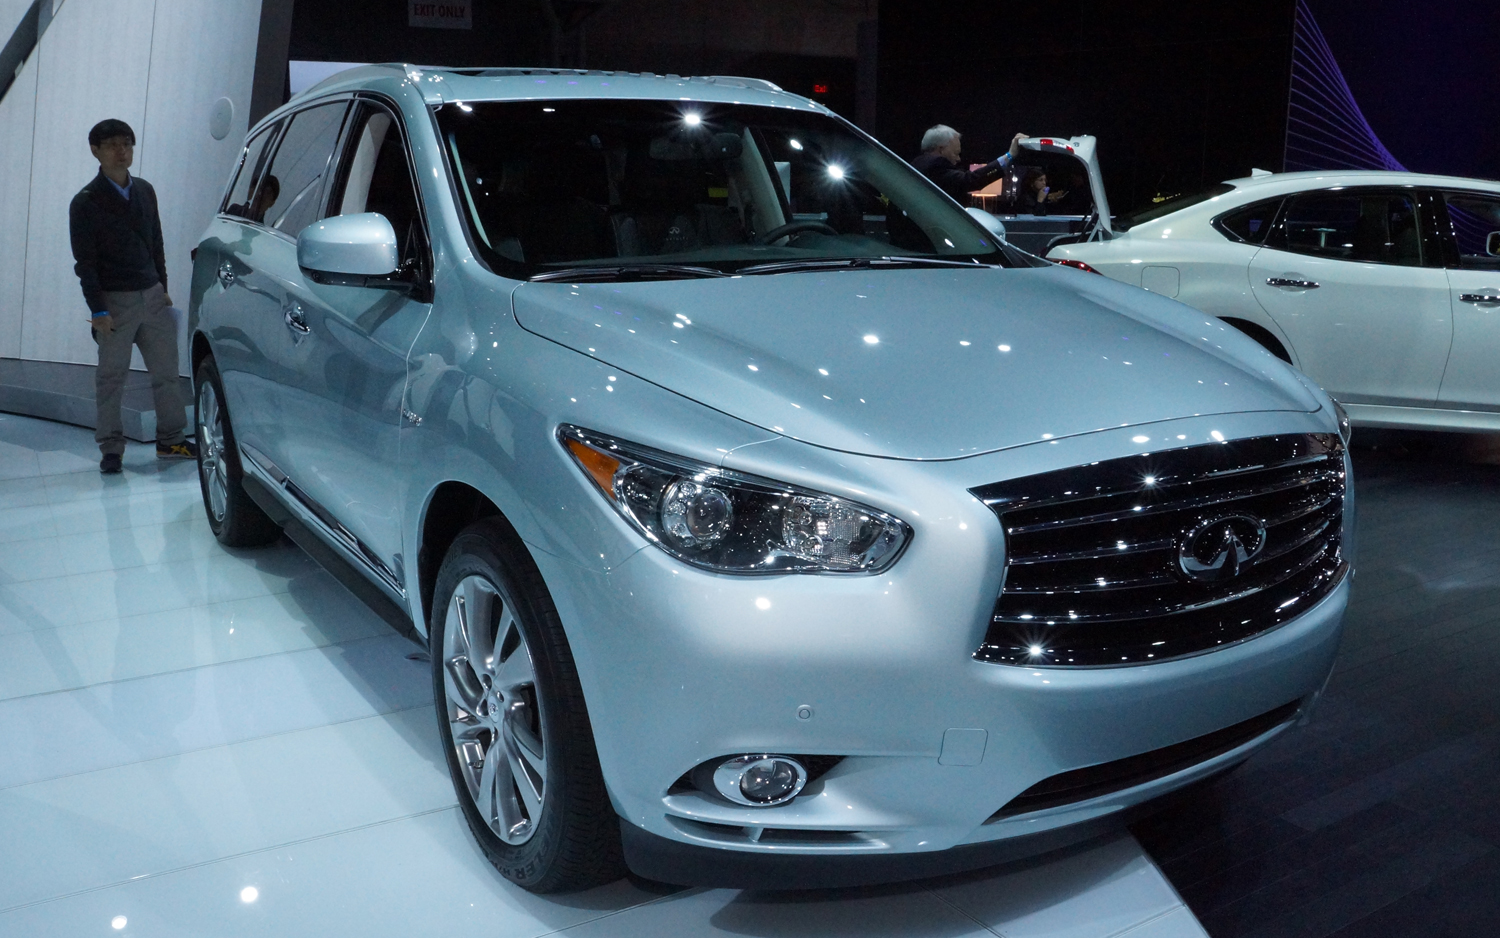 2014 infiniti qx60 hybrid to cost 3000 more than non hybrid 2013 2014 infiniti qx60 hybrid to cost 3000 more than non hybrid 2013 new york publicscrutiny Images